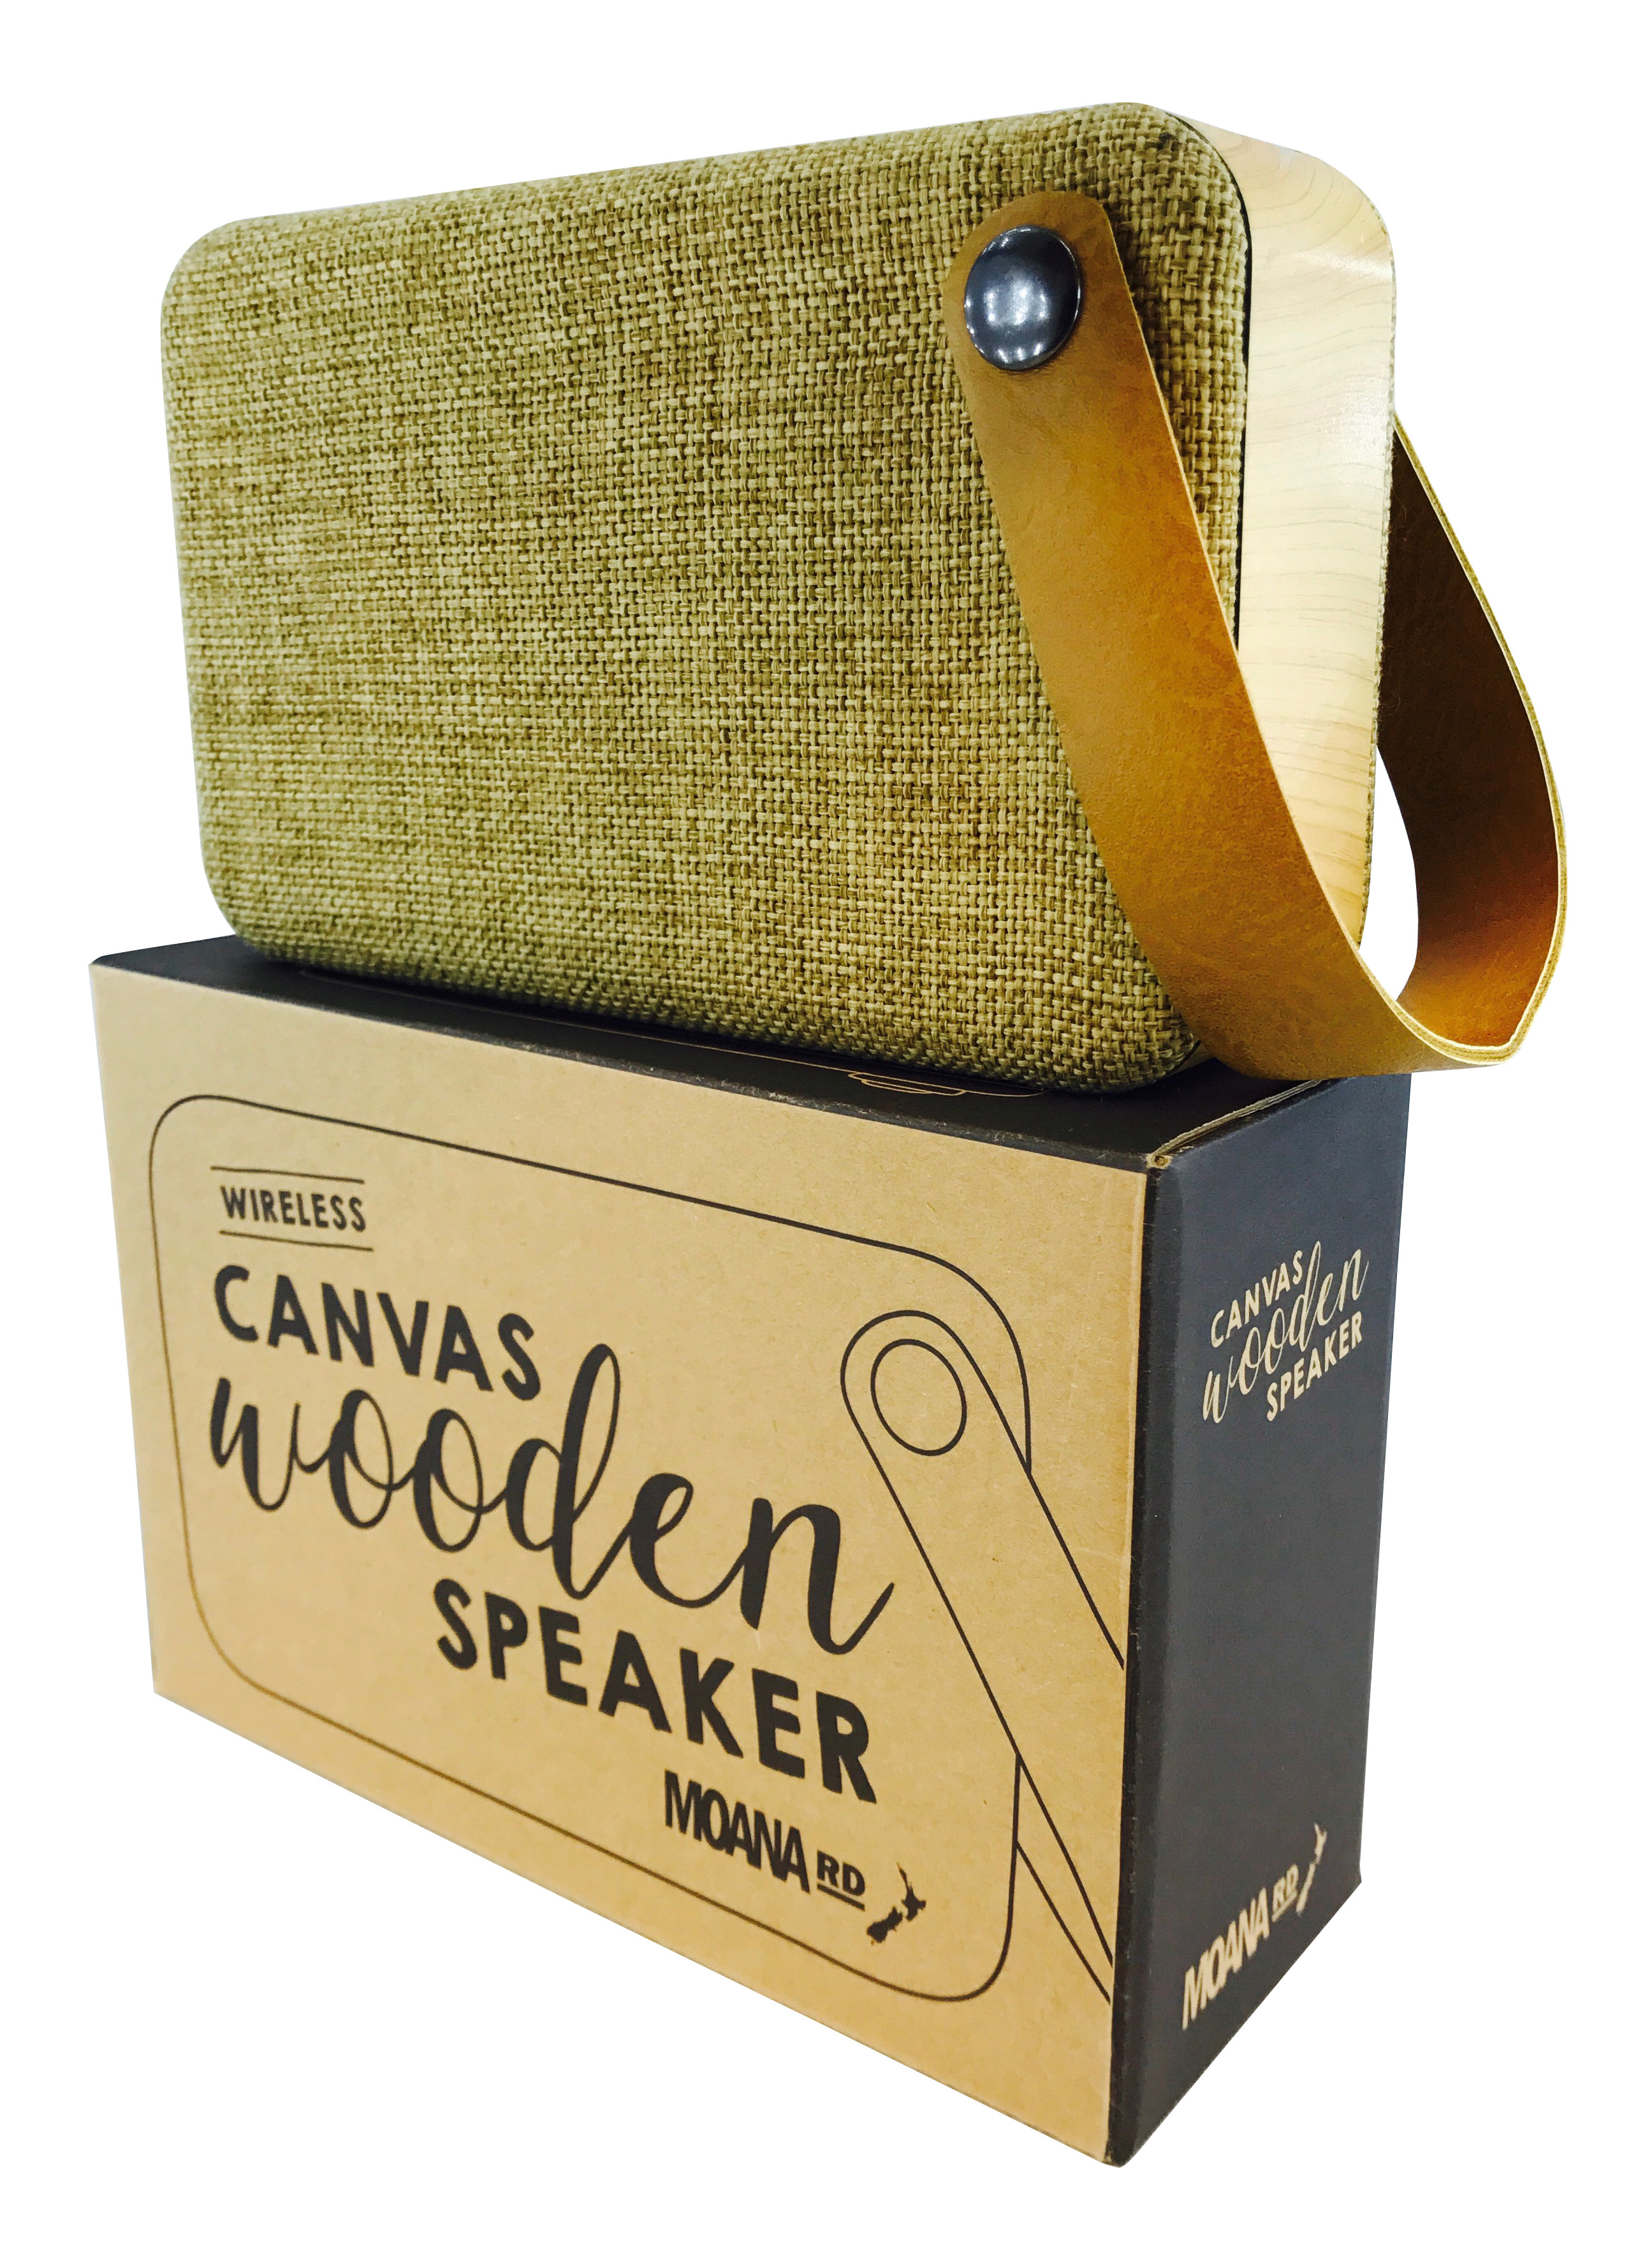 CANVAS WOODEN